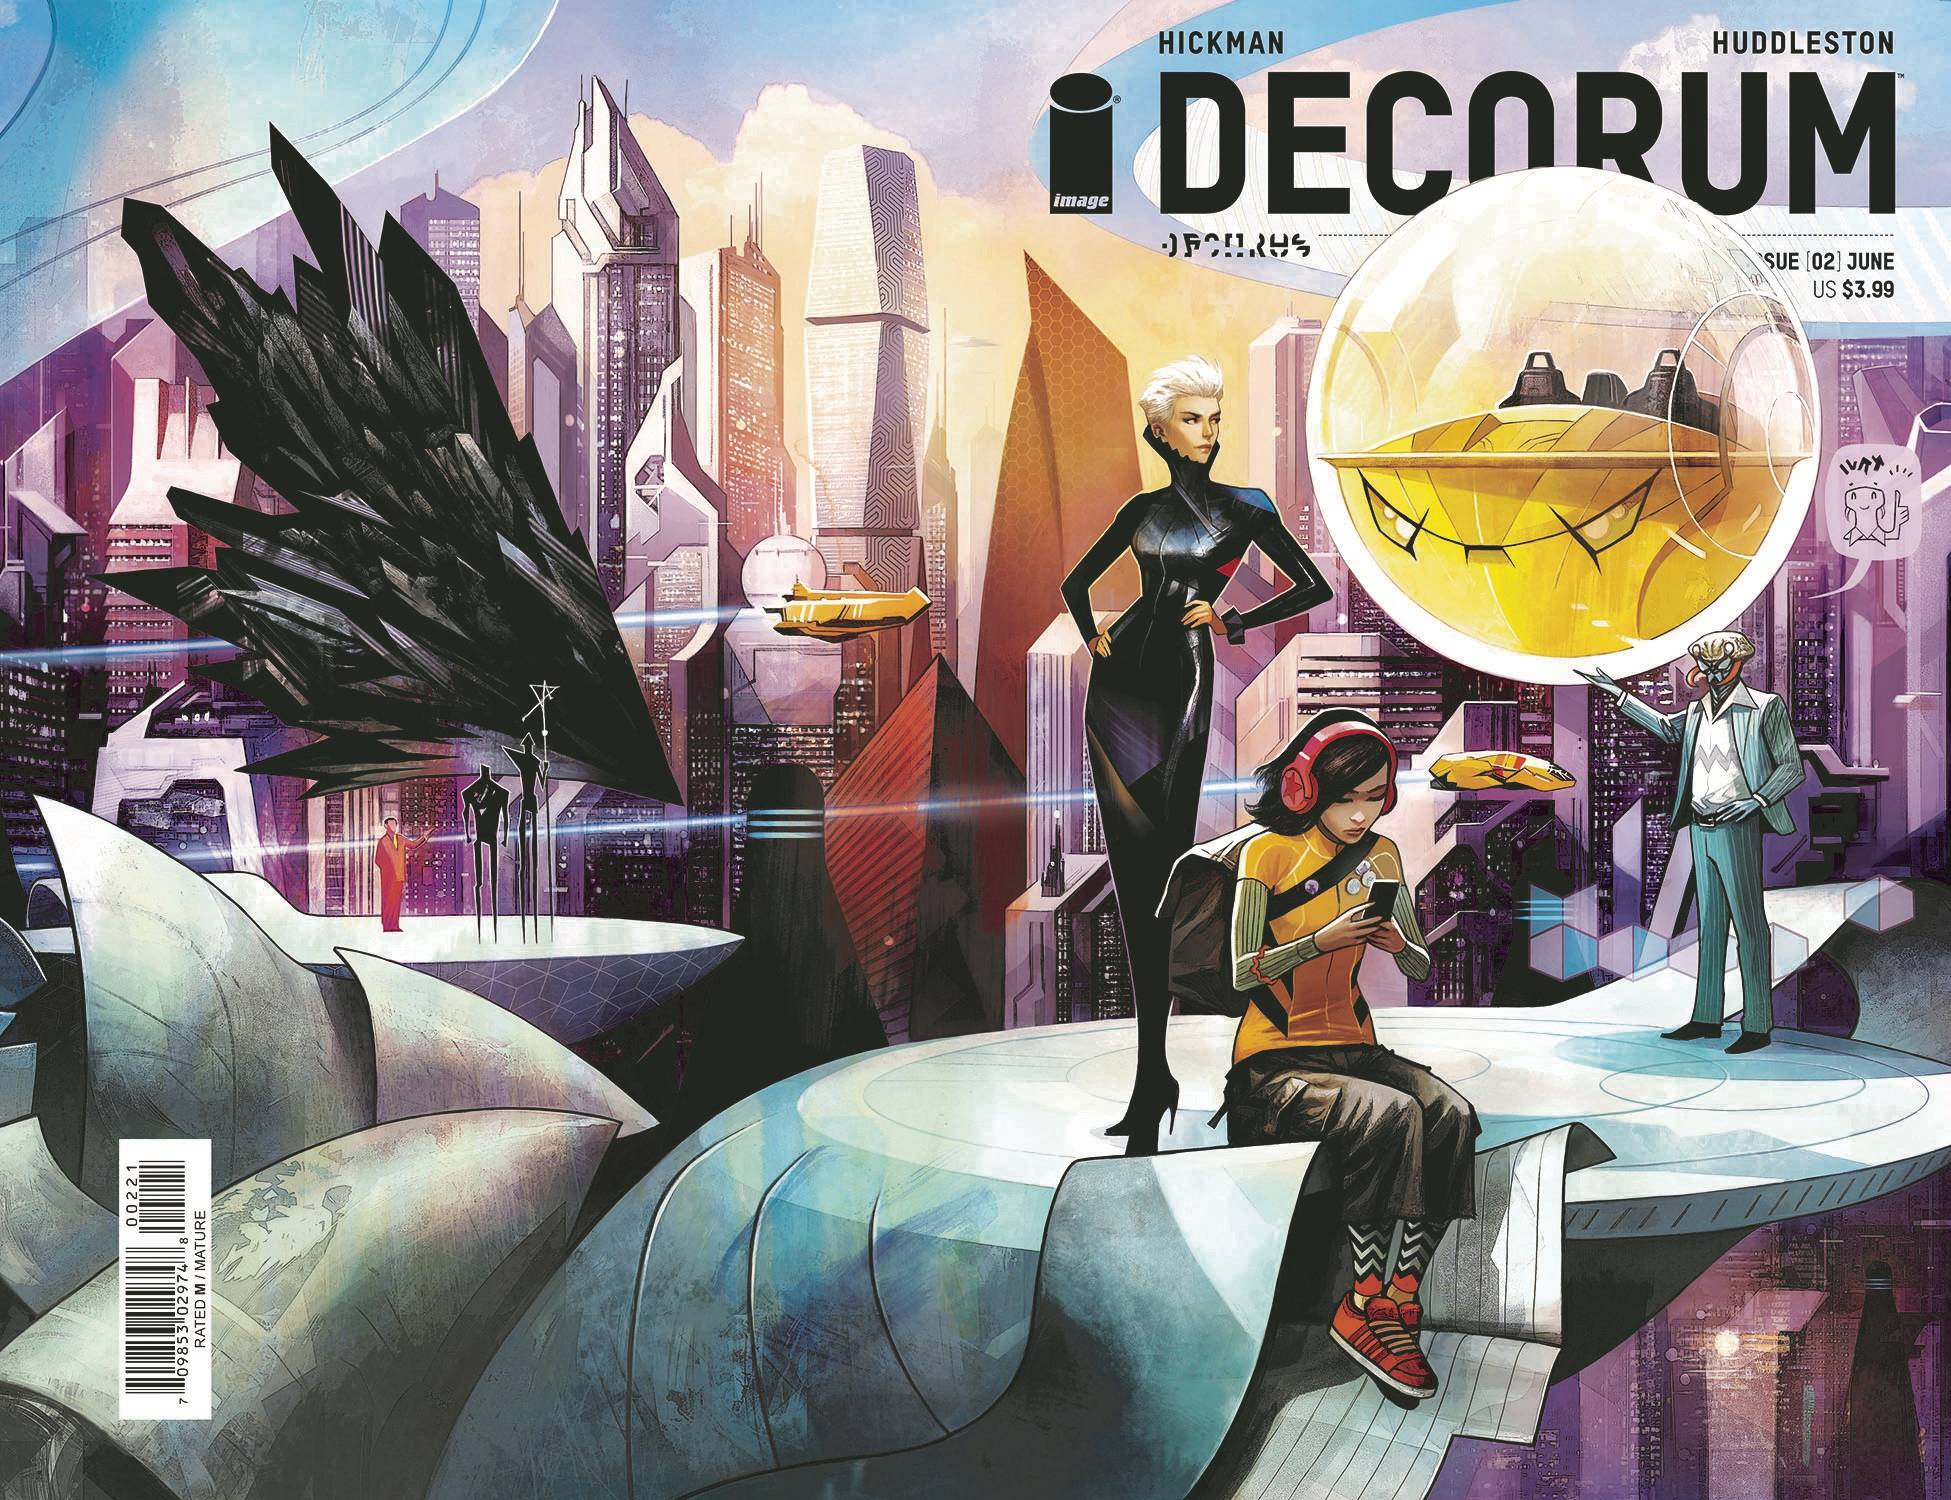 DECORUM #2 CVR B HUDDLESTON (MR)